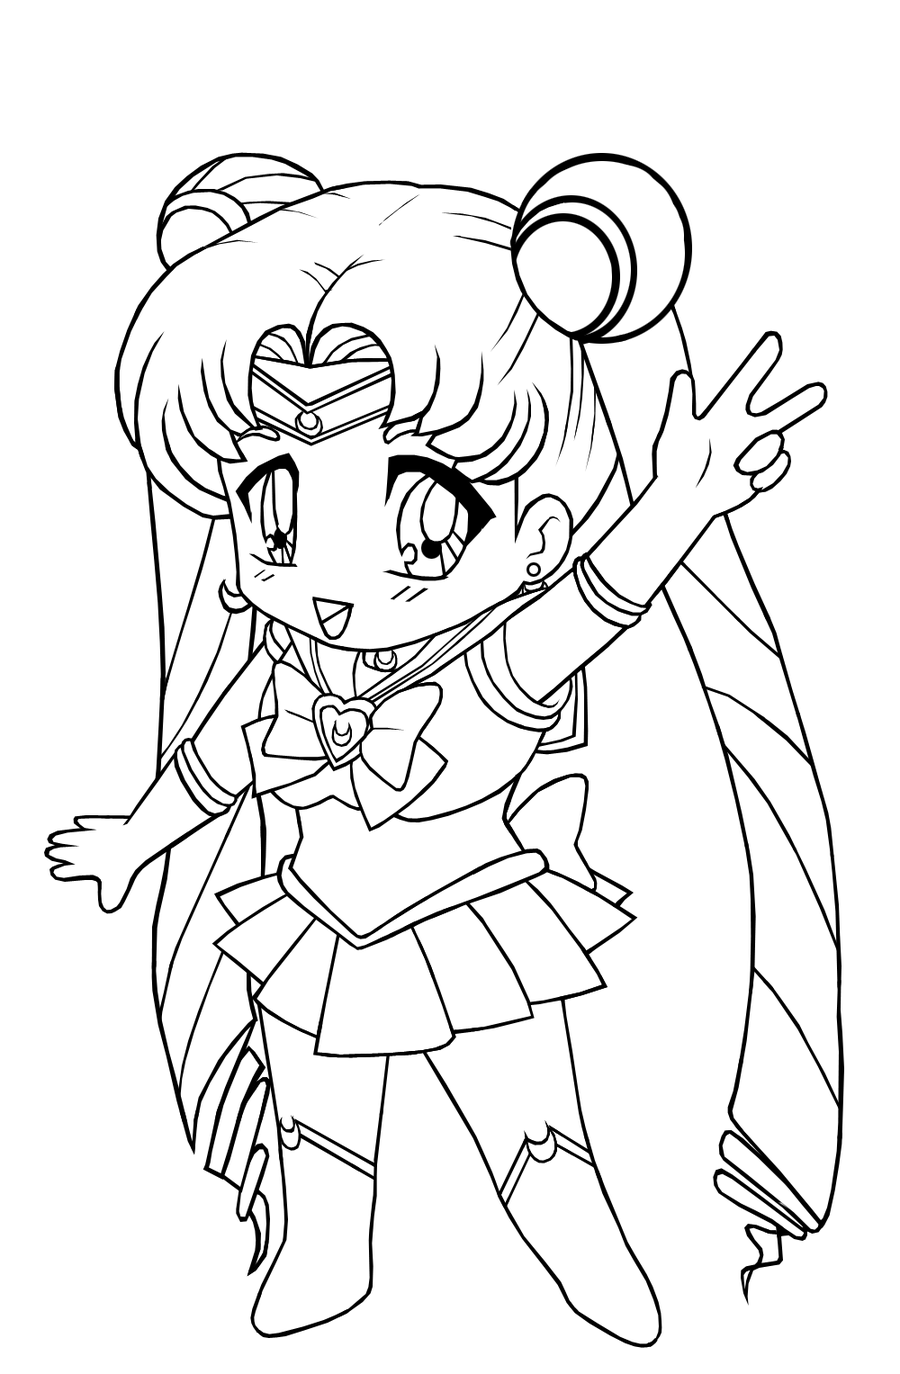 anime cat girl coloring pages anime cat girl coloring pages coloring home cat anime girl coloring pages